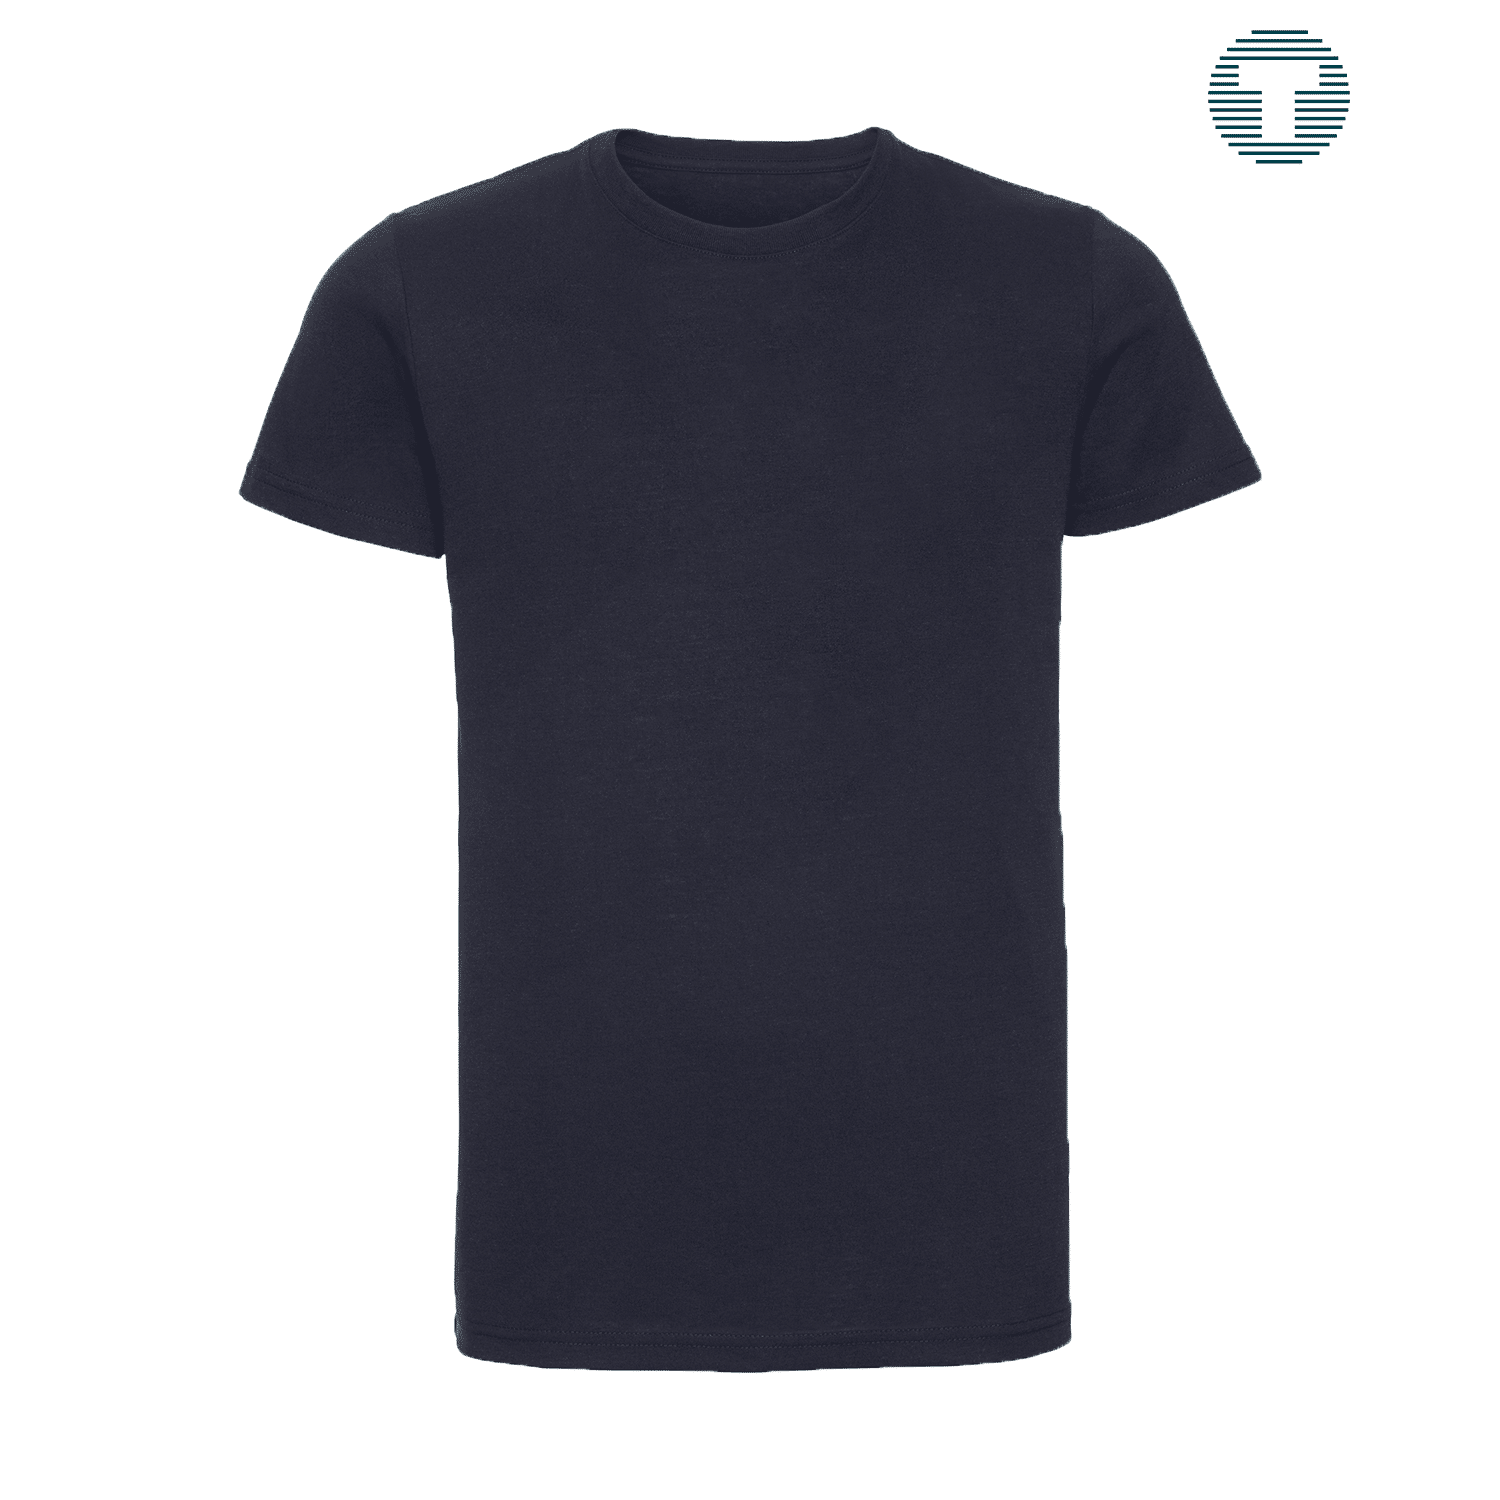 slim fit tshirt bedrukken